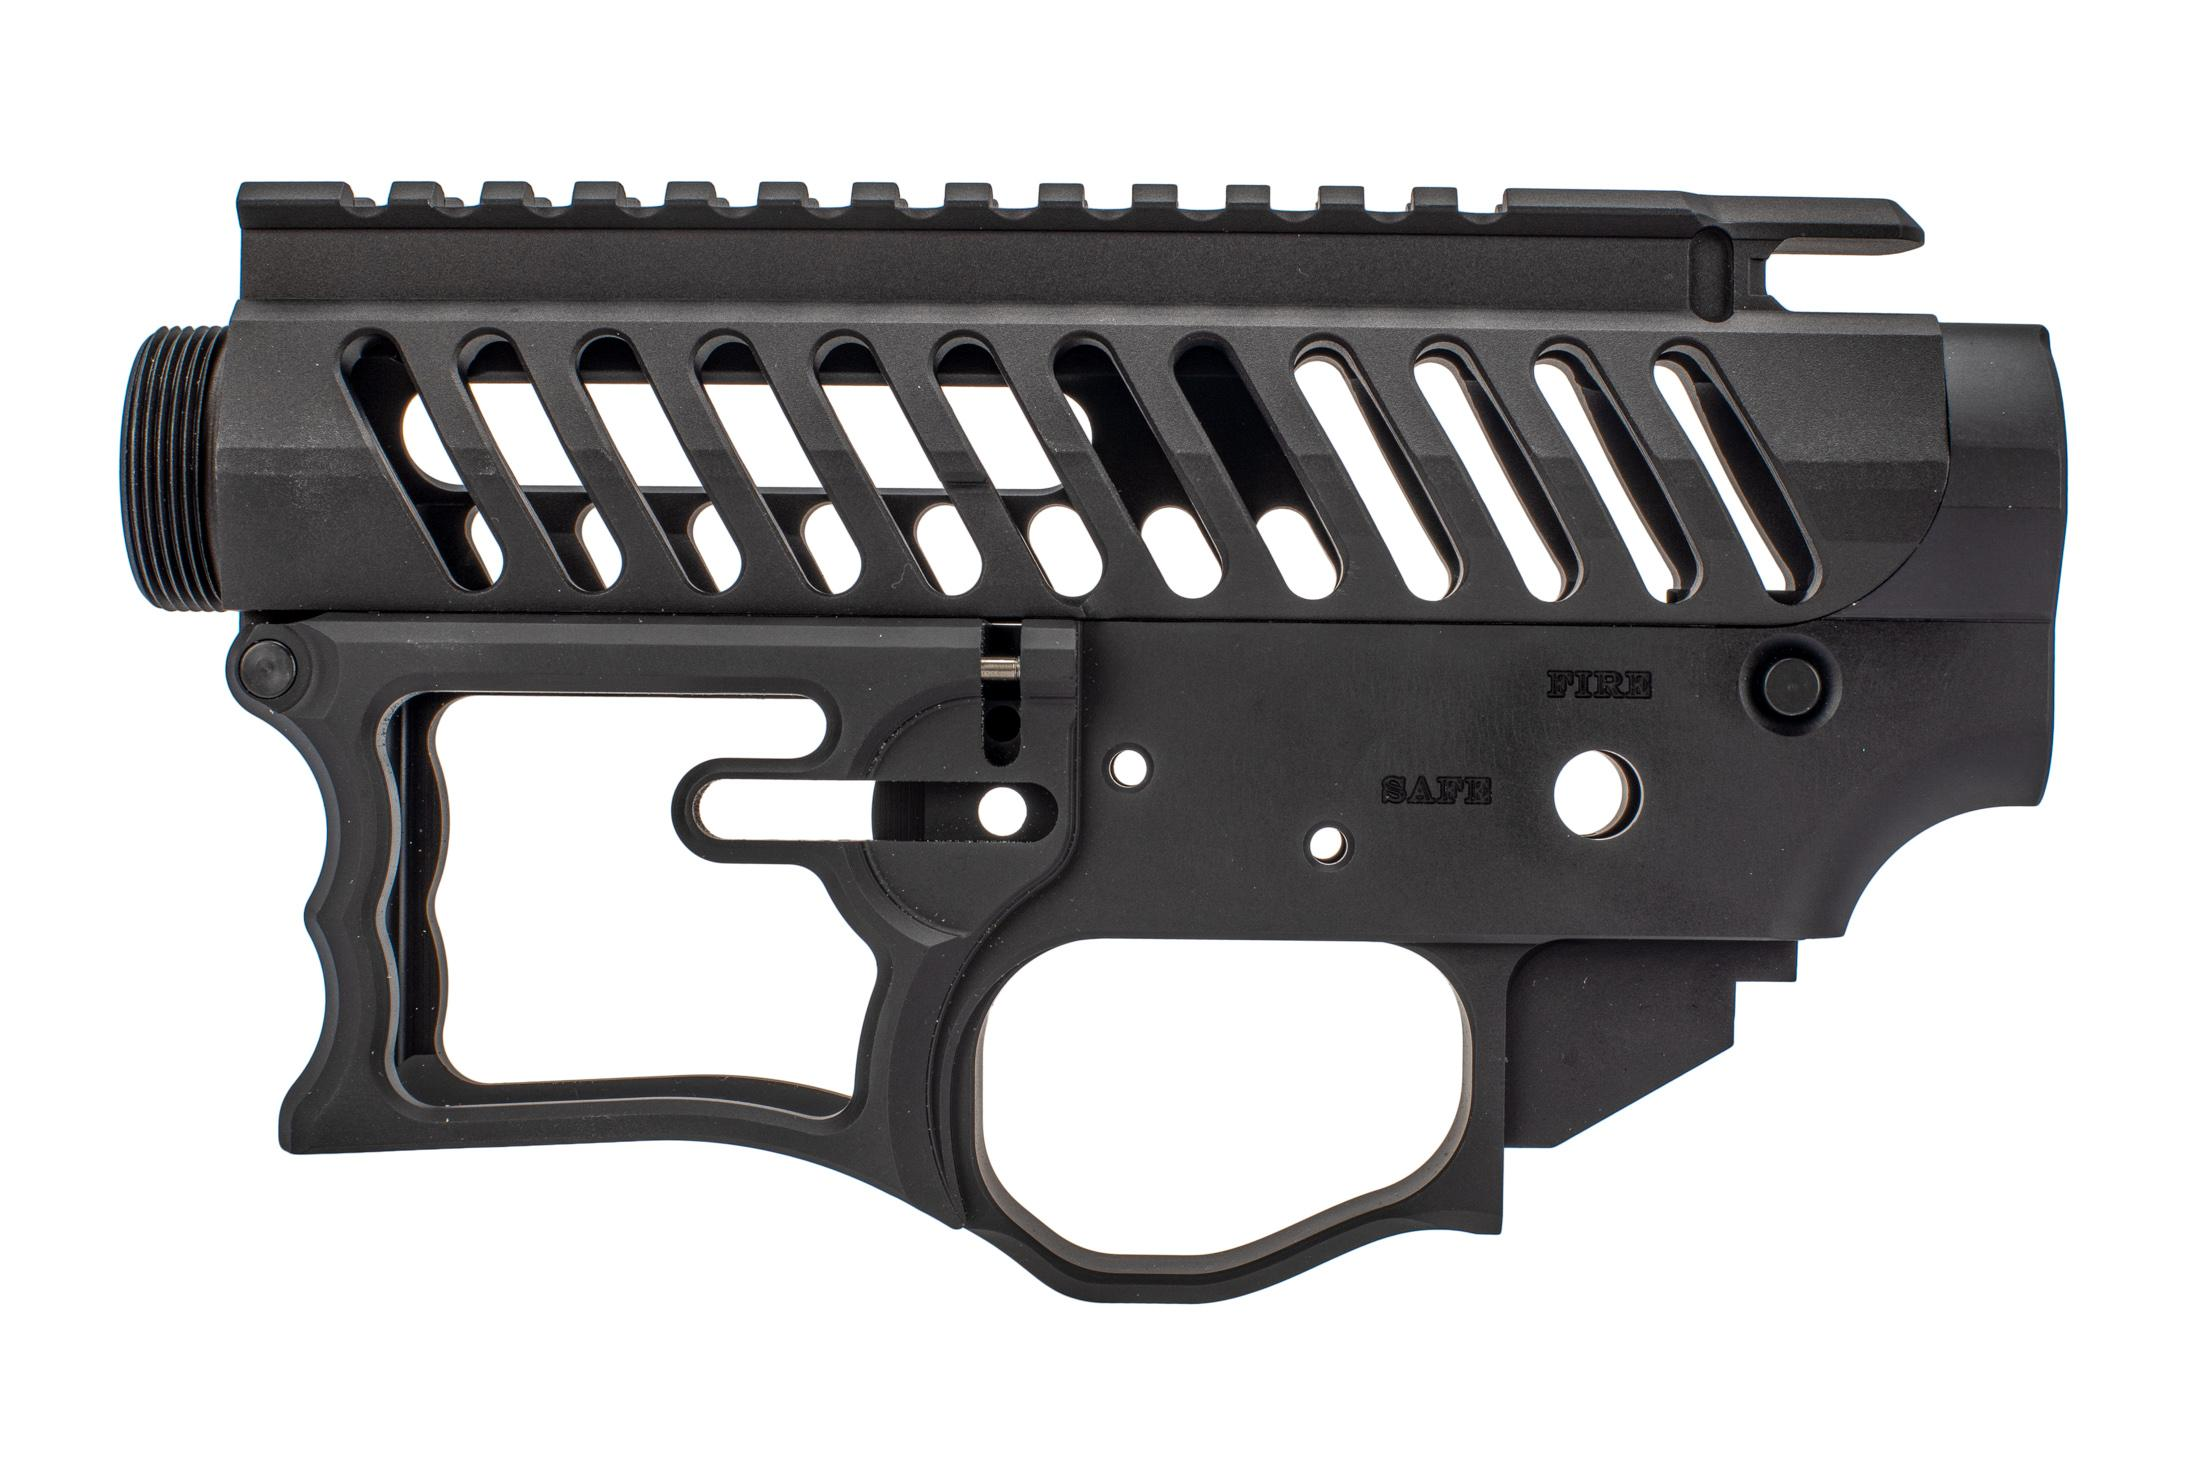 F-1 Firearms Skeletonized receiver set features a beveled magazine well and large trigger guard